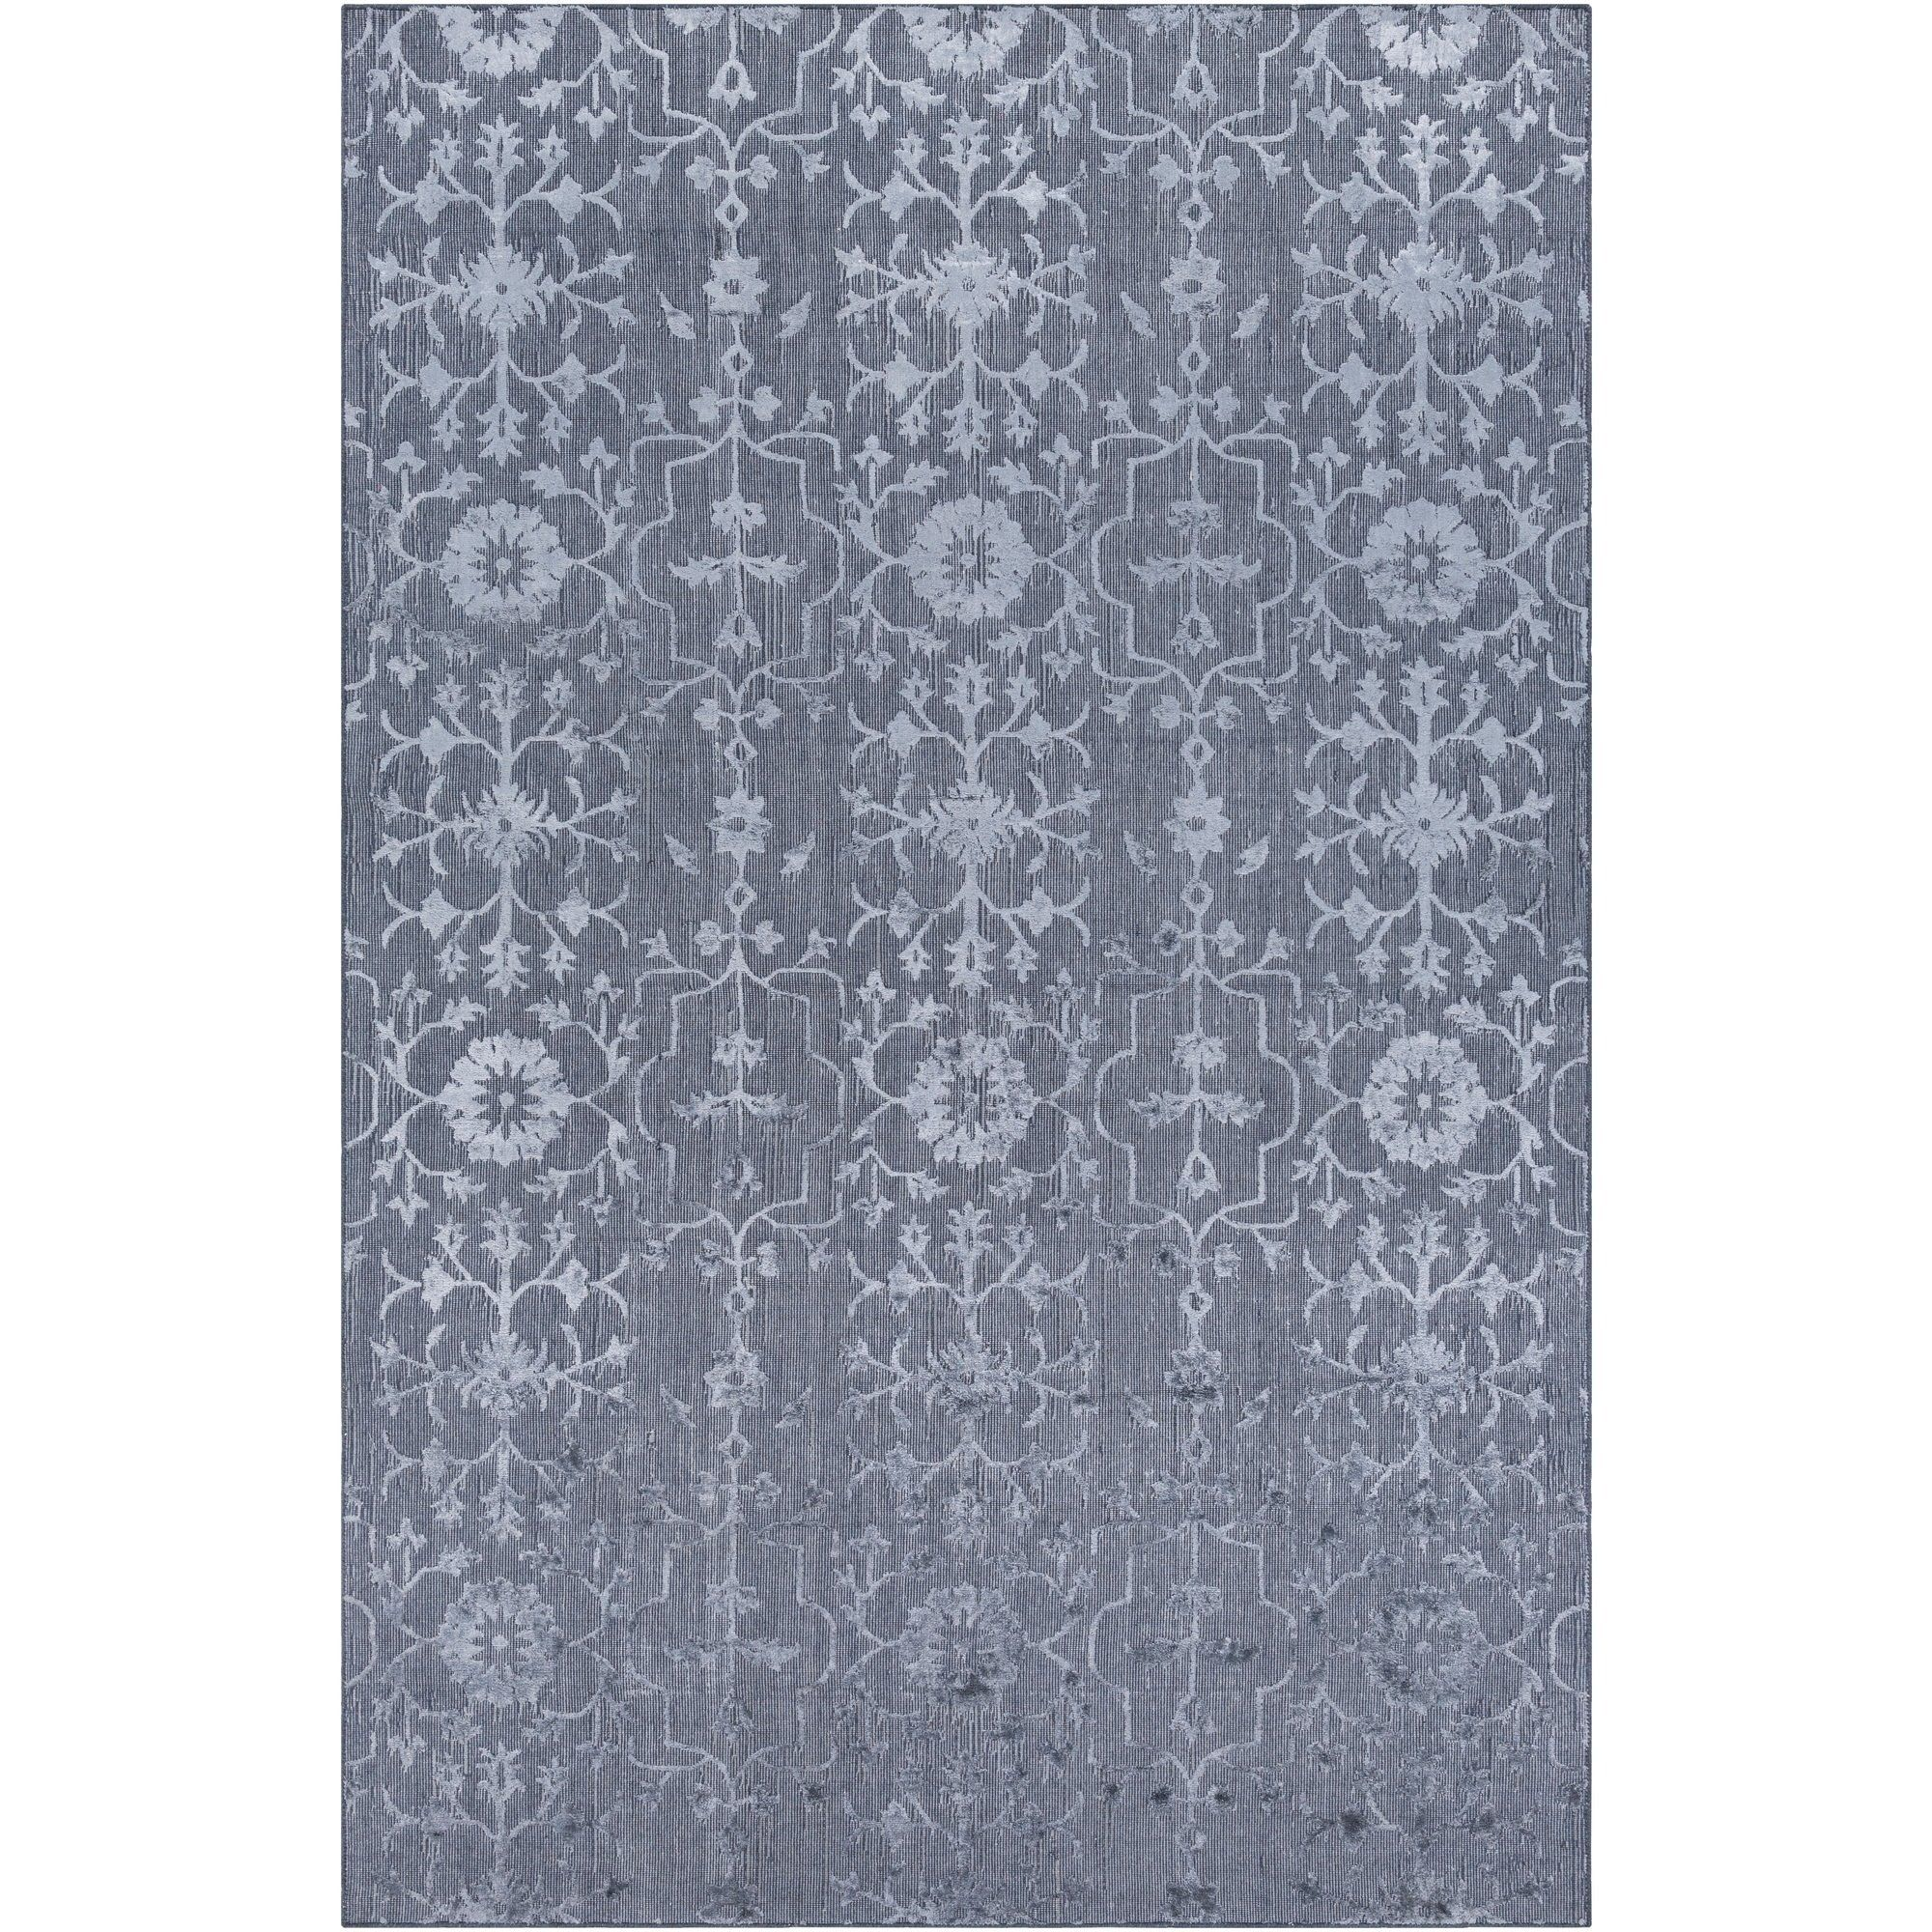 Hand Knotted Wave Viscose Area Rug 9 X 13 9 X 13 Blue